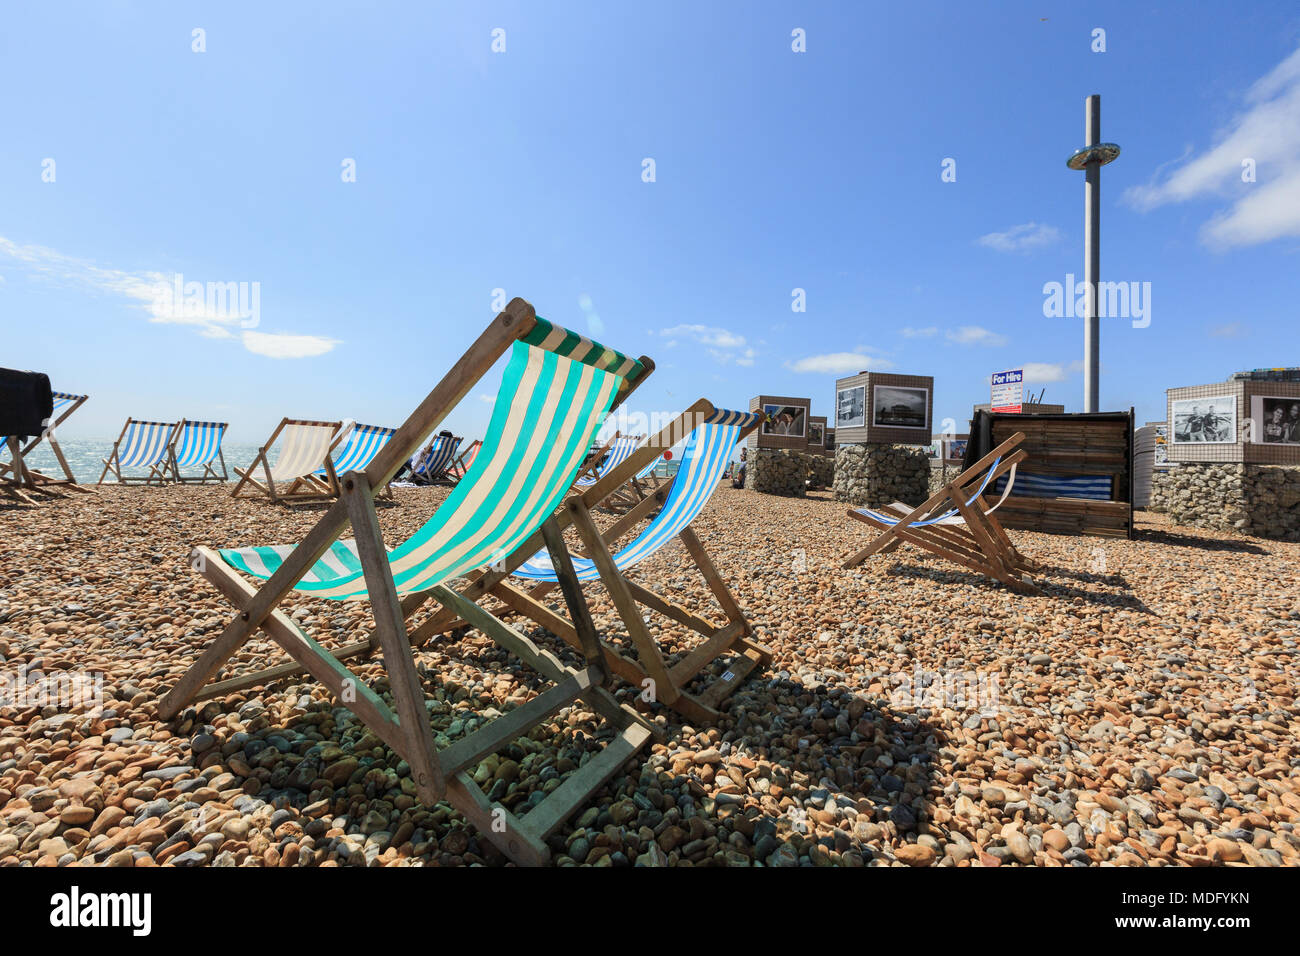 Brighton, United Kingdom - AUGUST 1, 2017: empty striped folding beach chairs on Brighton costline, openair photo exhibition, English channel, British - Stock Image